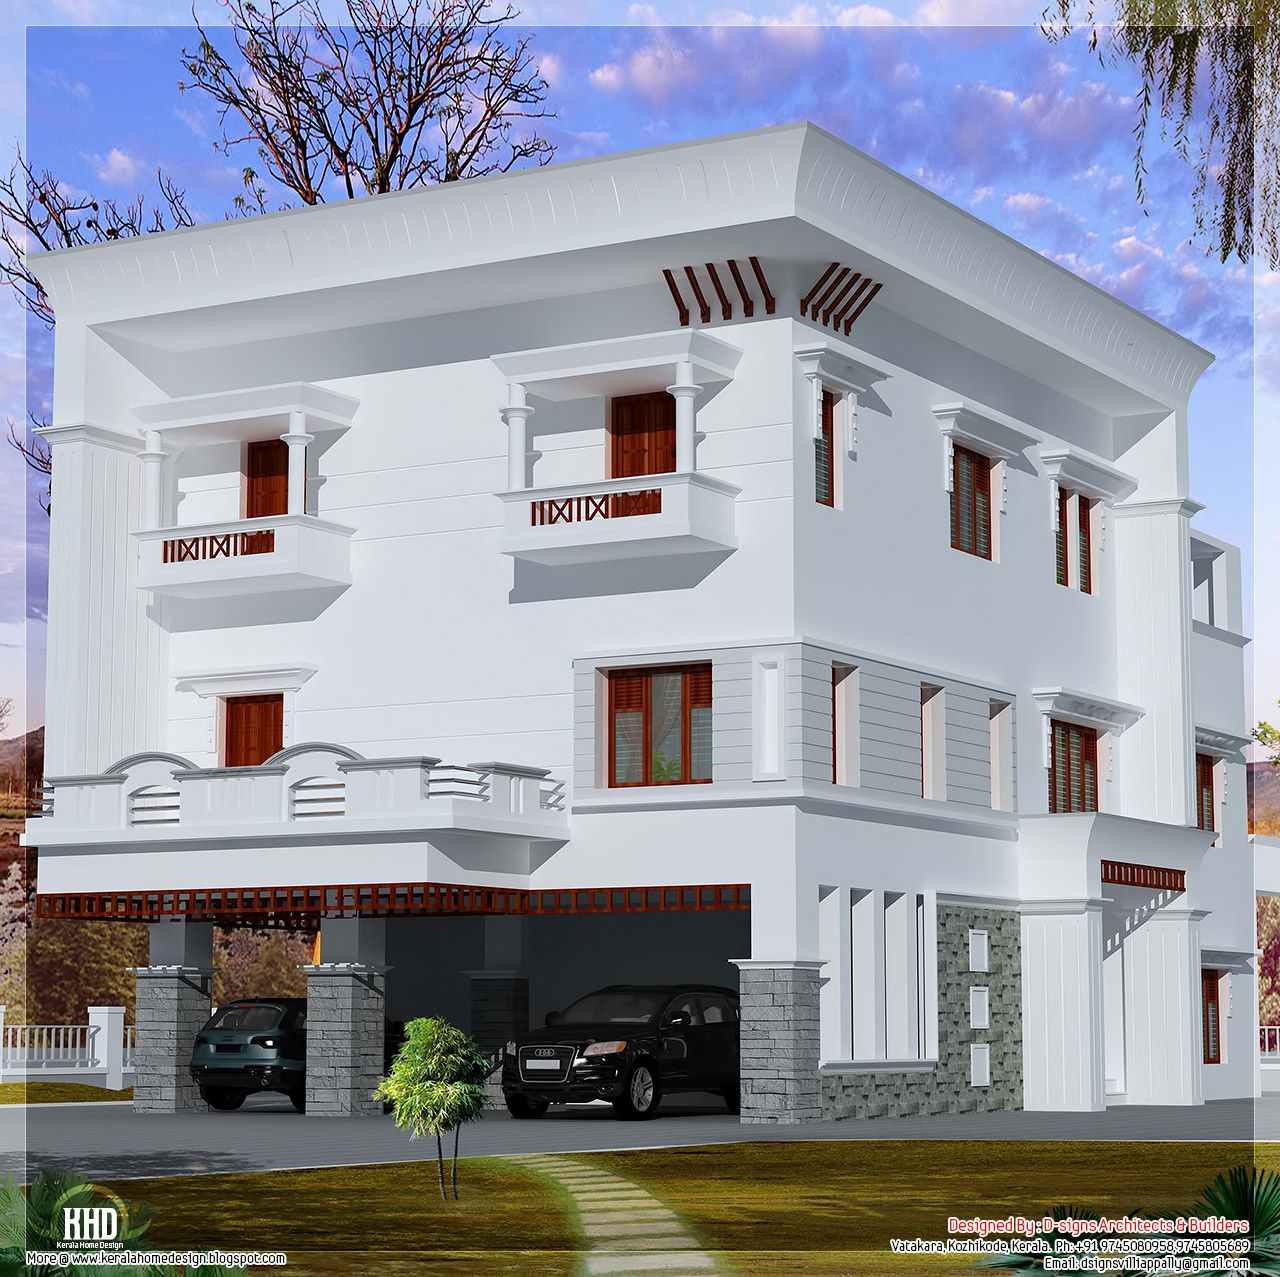 Storey flat roof home design house design plans roof design plans